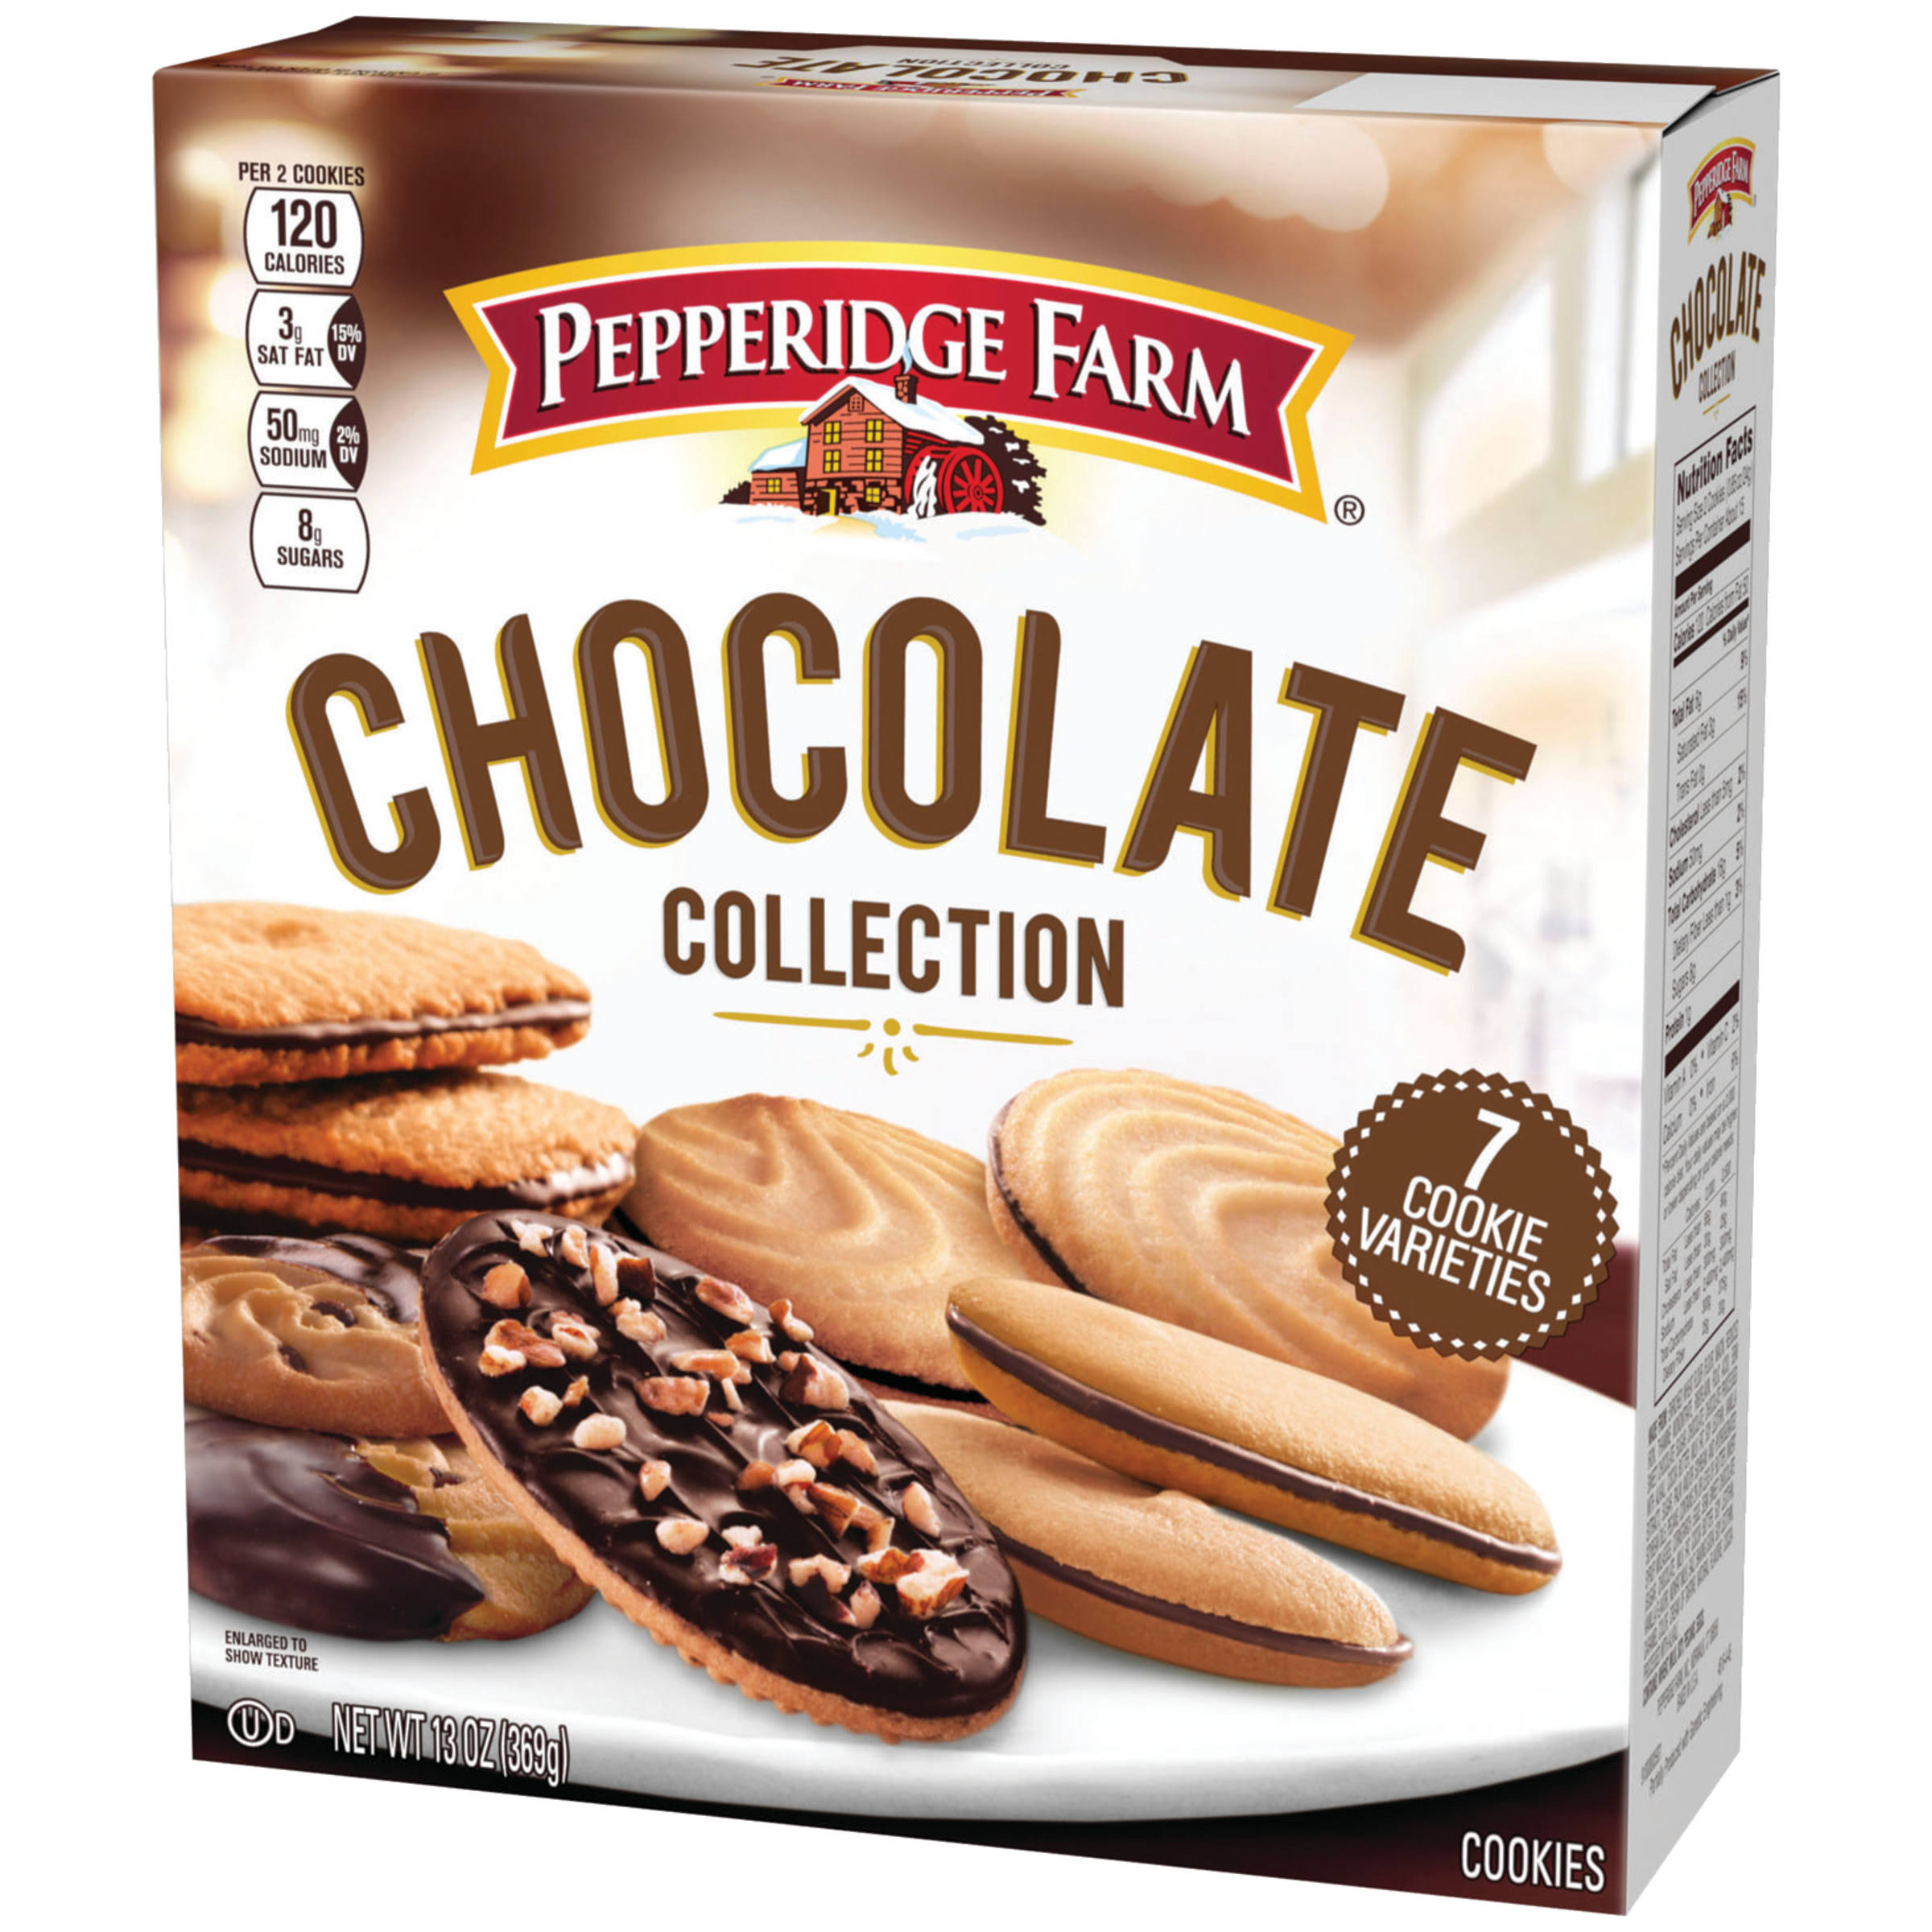 Pepperidge Farm Chocolate Collection Cookies - 13oz